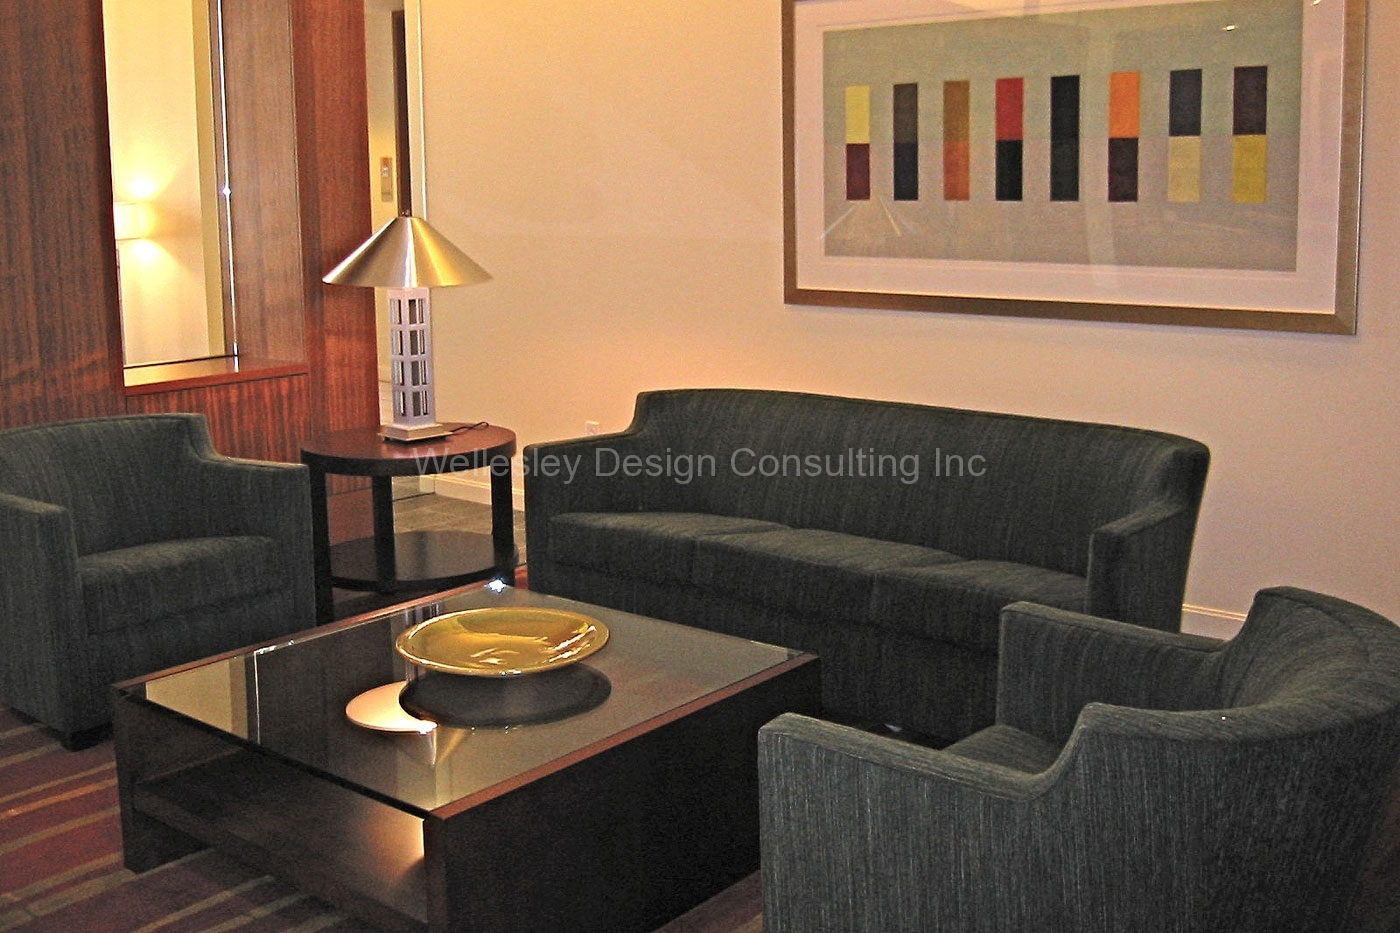 Massachusetts interior designers, WDC in Methuen, designed this common area in a luxury apartment building in Cambridge MA